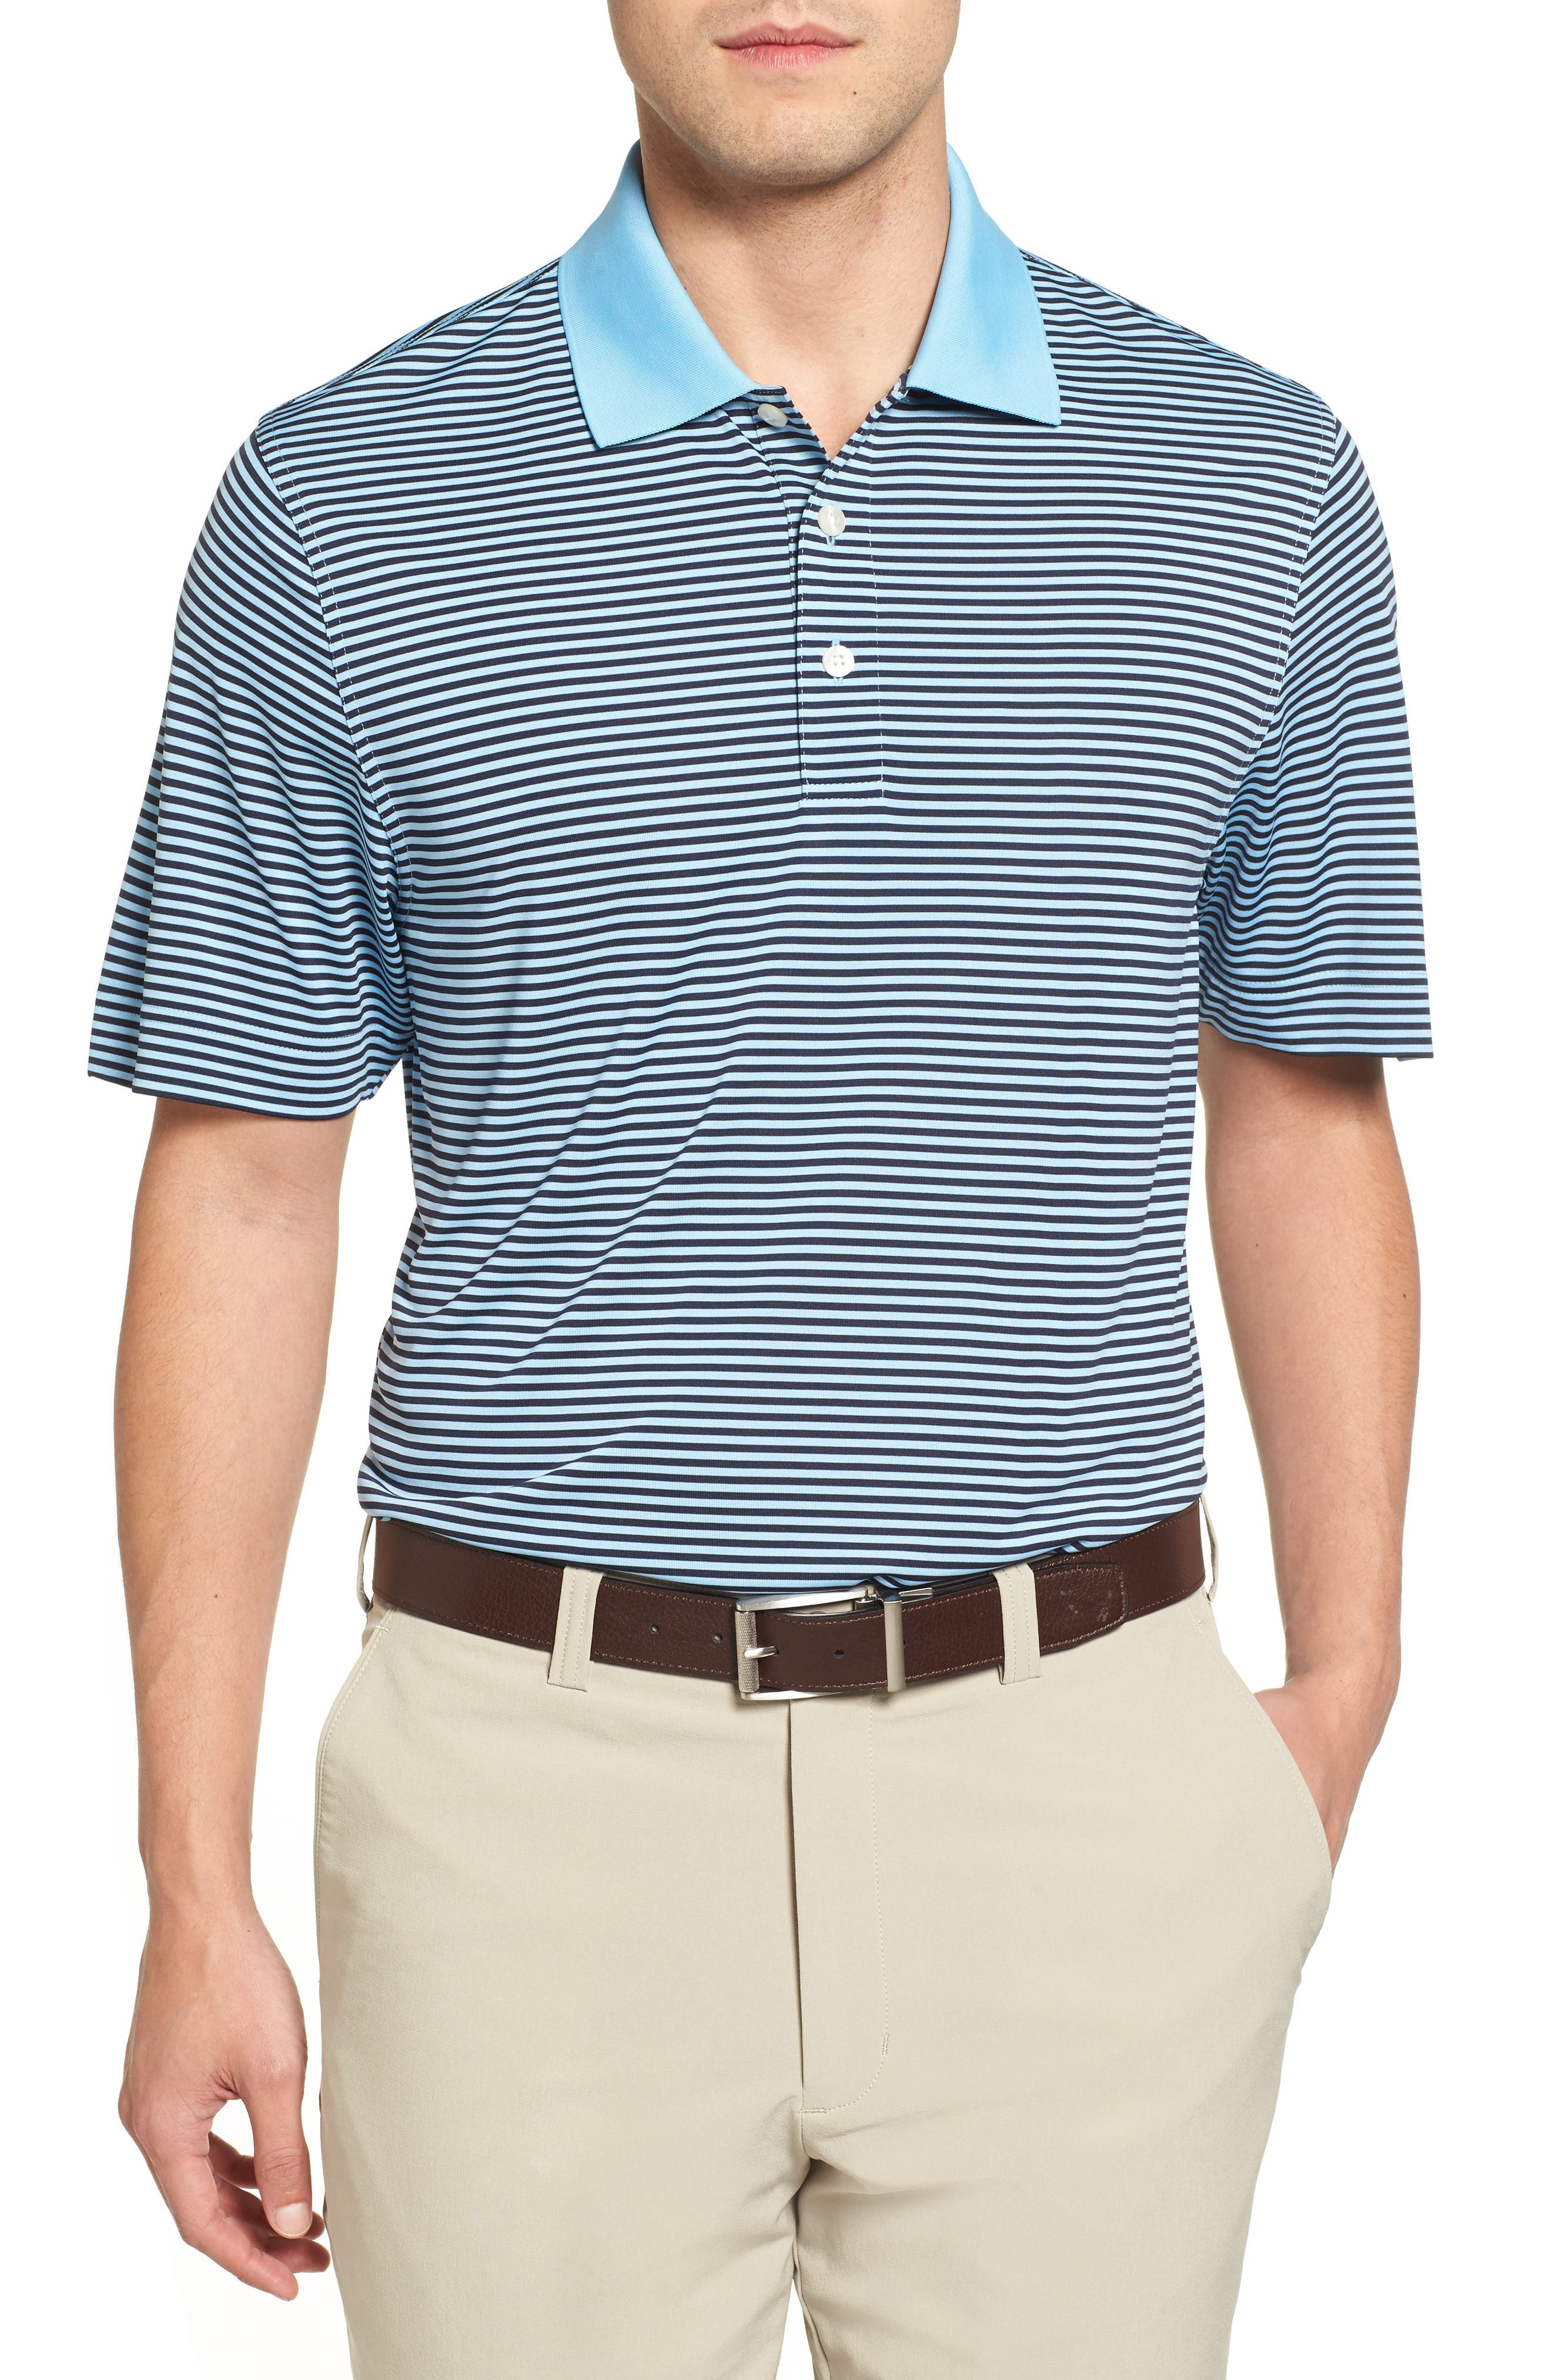 Cutter & Buck 'Trevor' DryTec Moisture Wicking Golf Polo (Big & Tall)